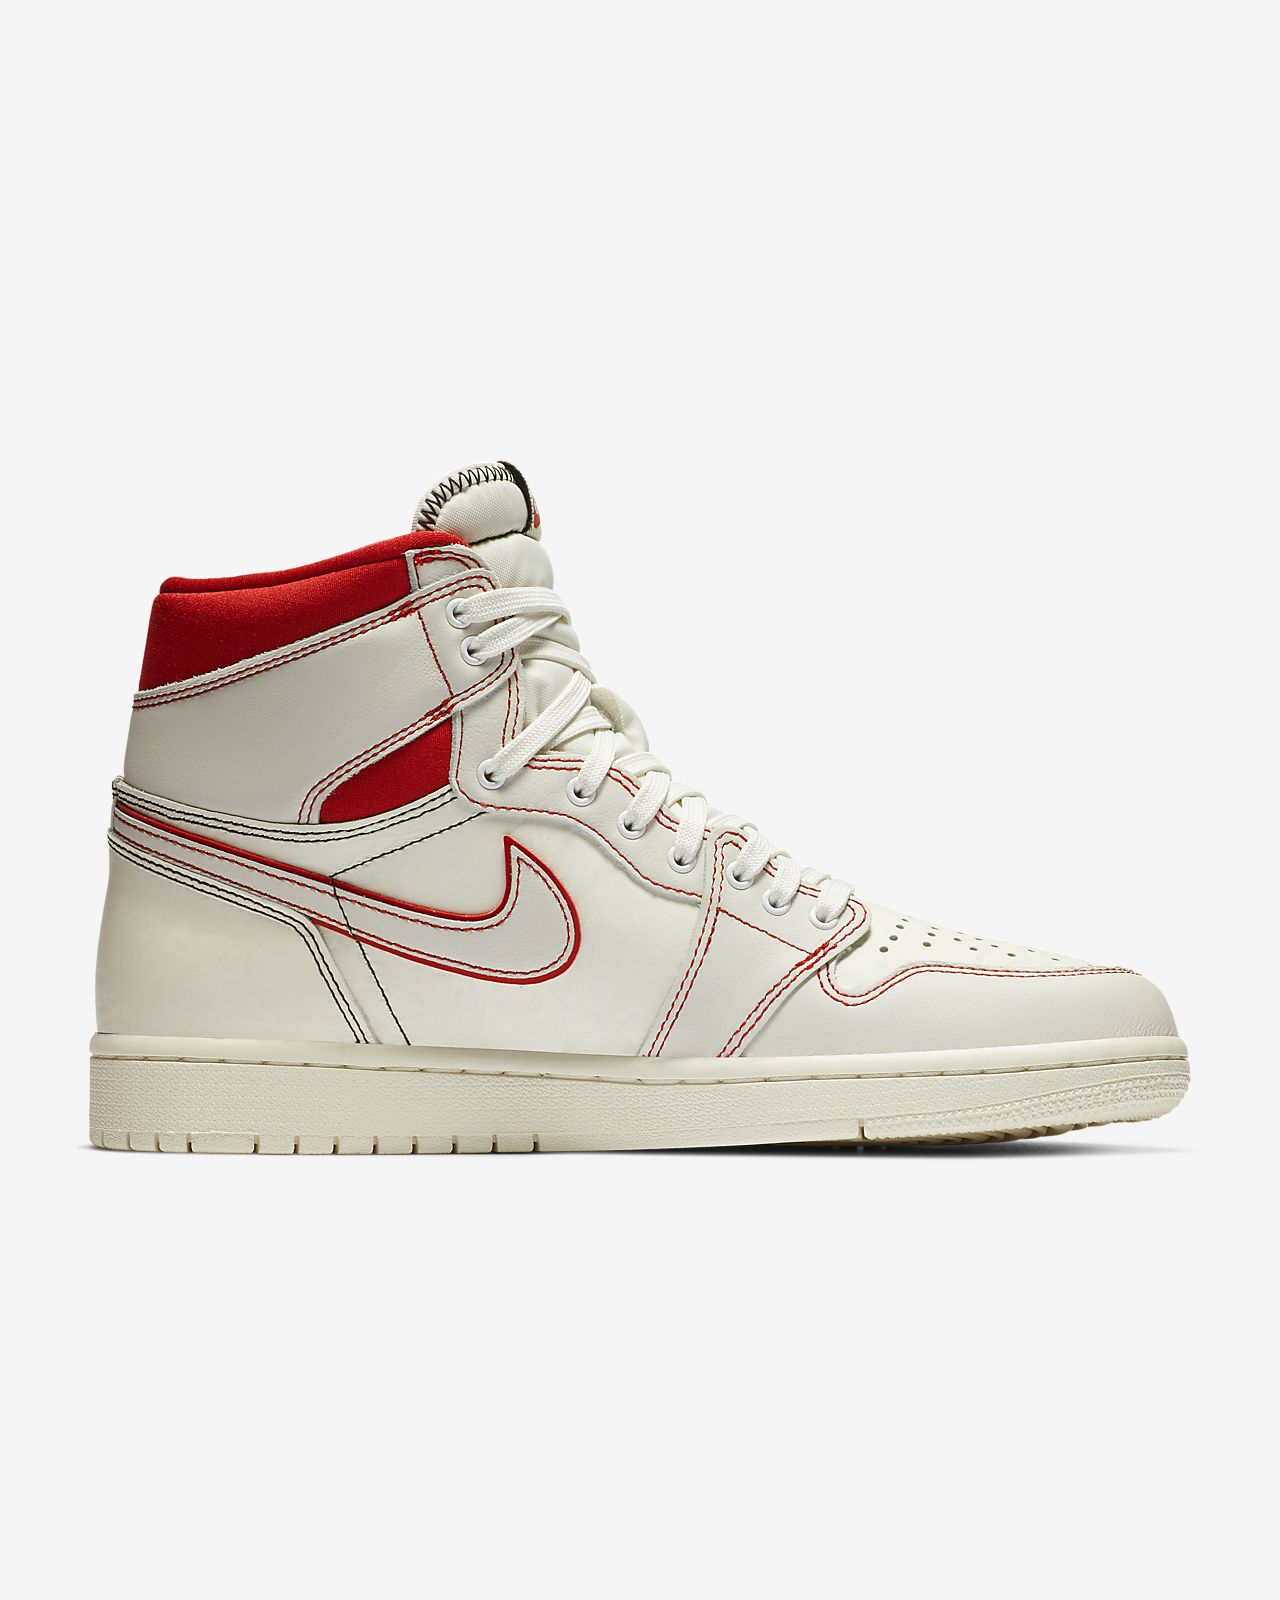 36db01b4adc1 Air Jordan 1 Retro High OG Shoe. Nike.com